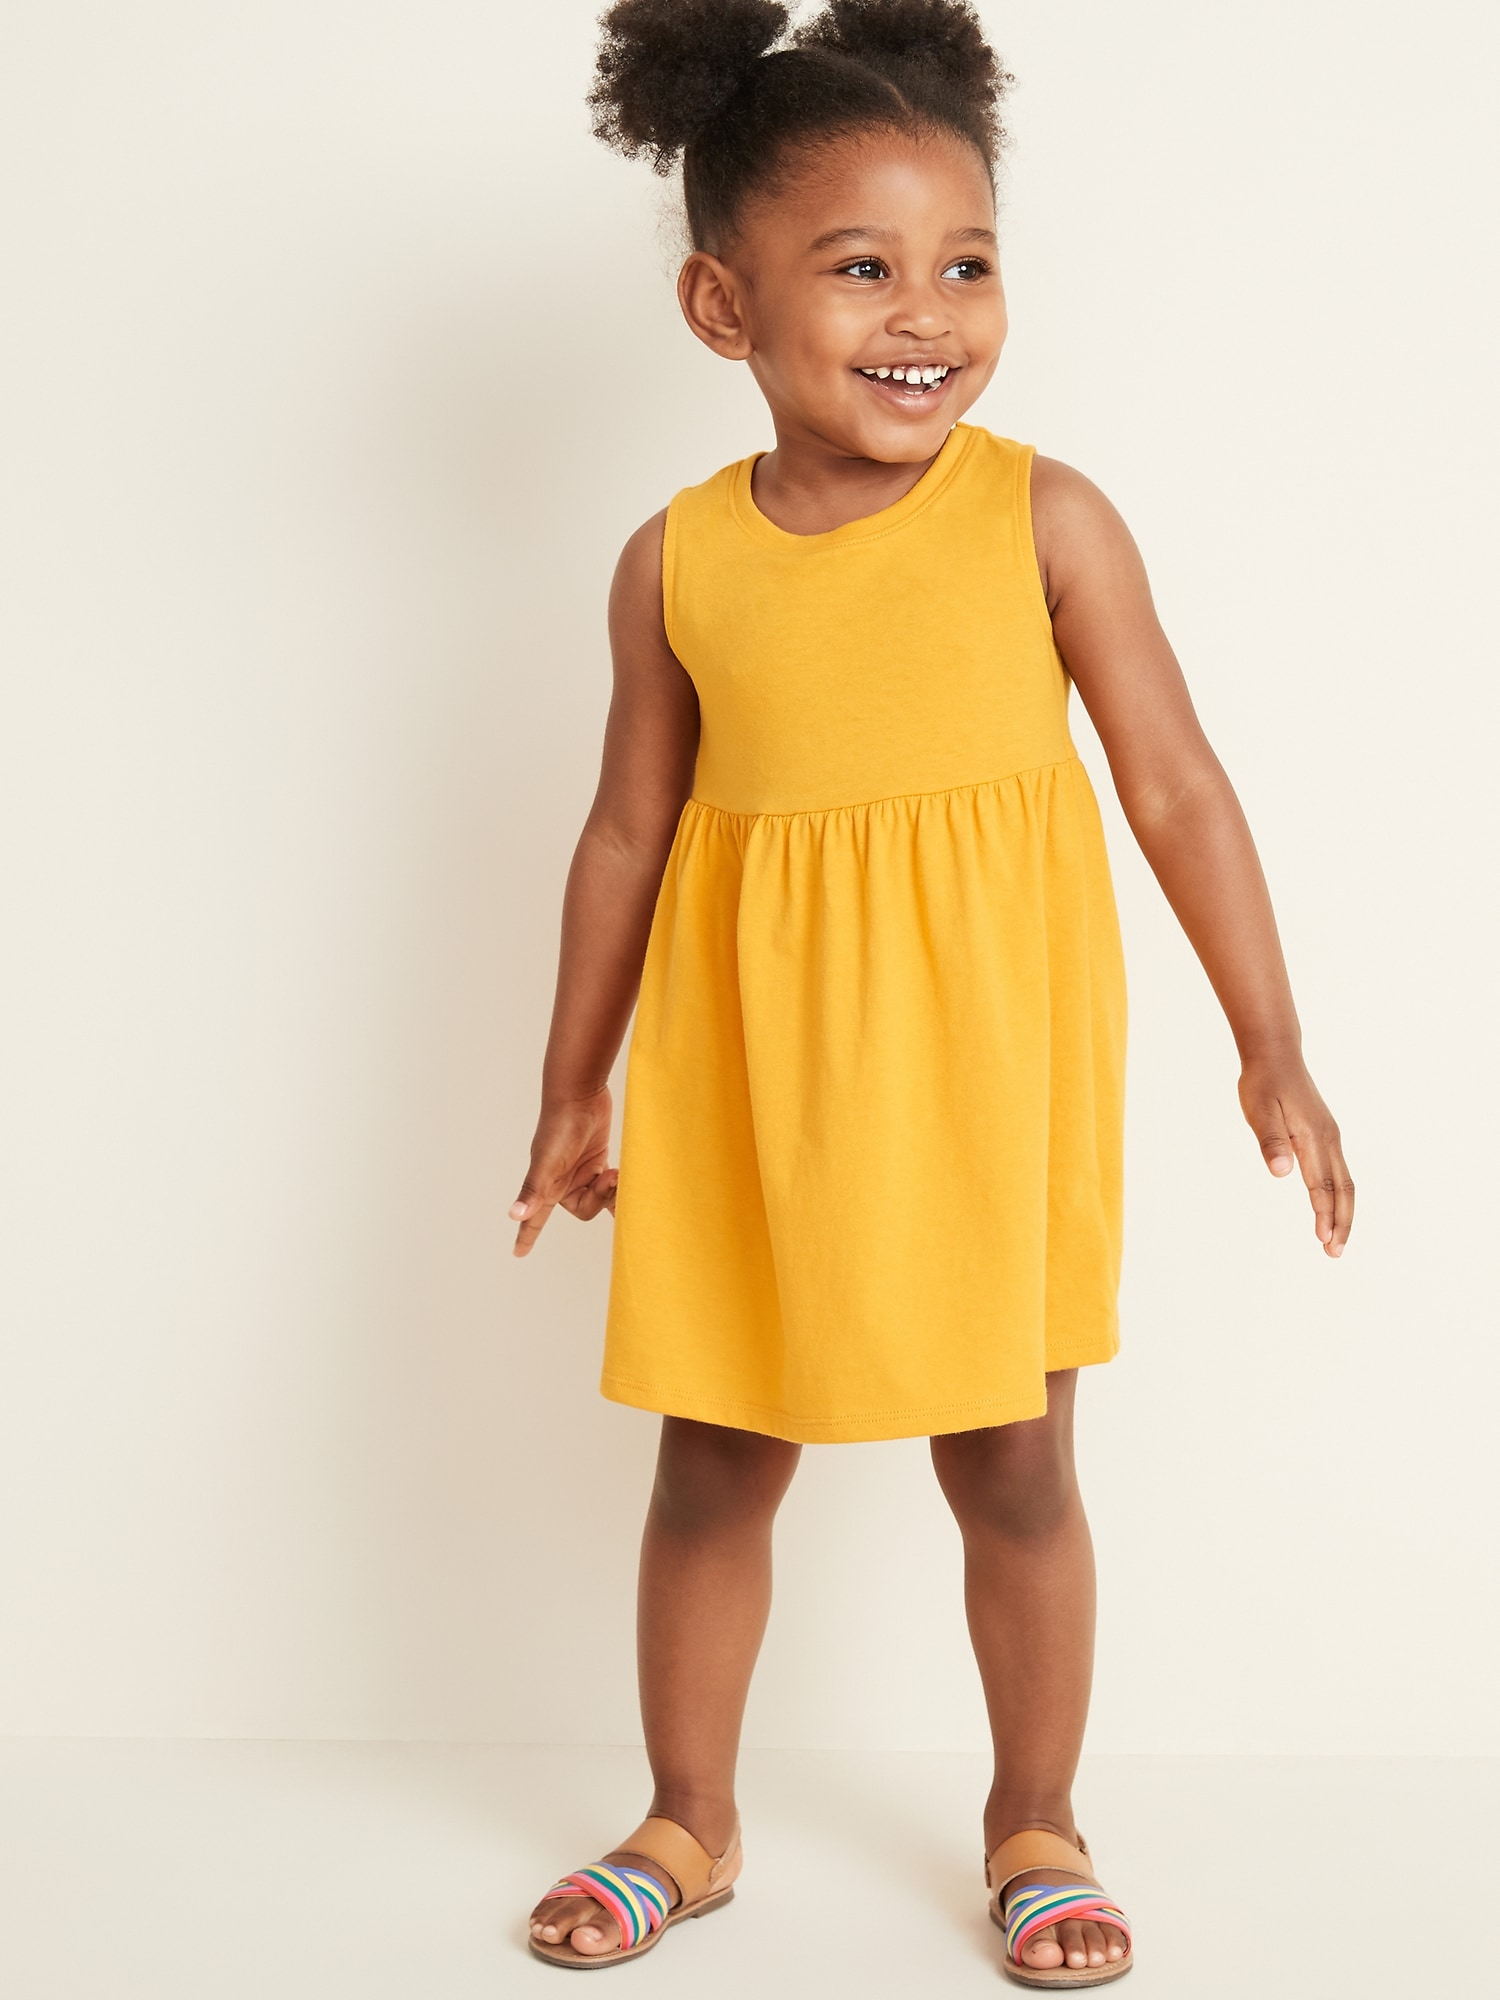 da4a0fa03 Sleeveless Fit & Flare Dress for Toddler Girls | Old Navy